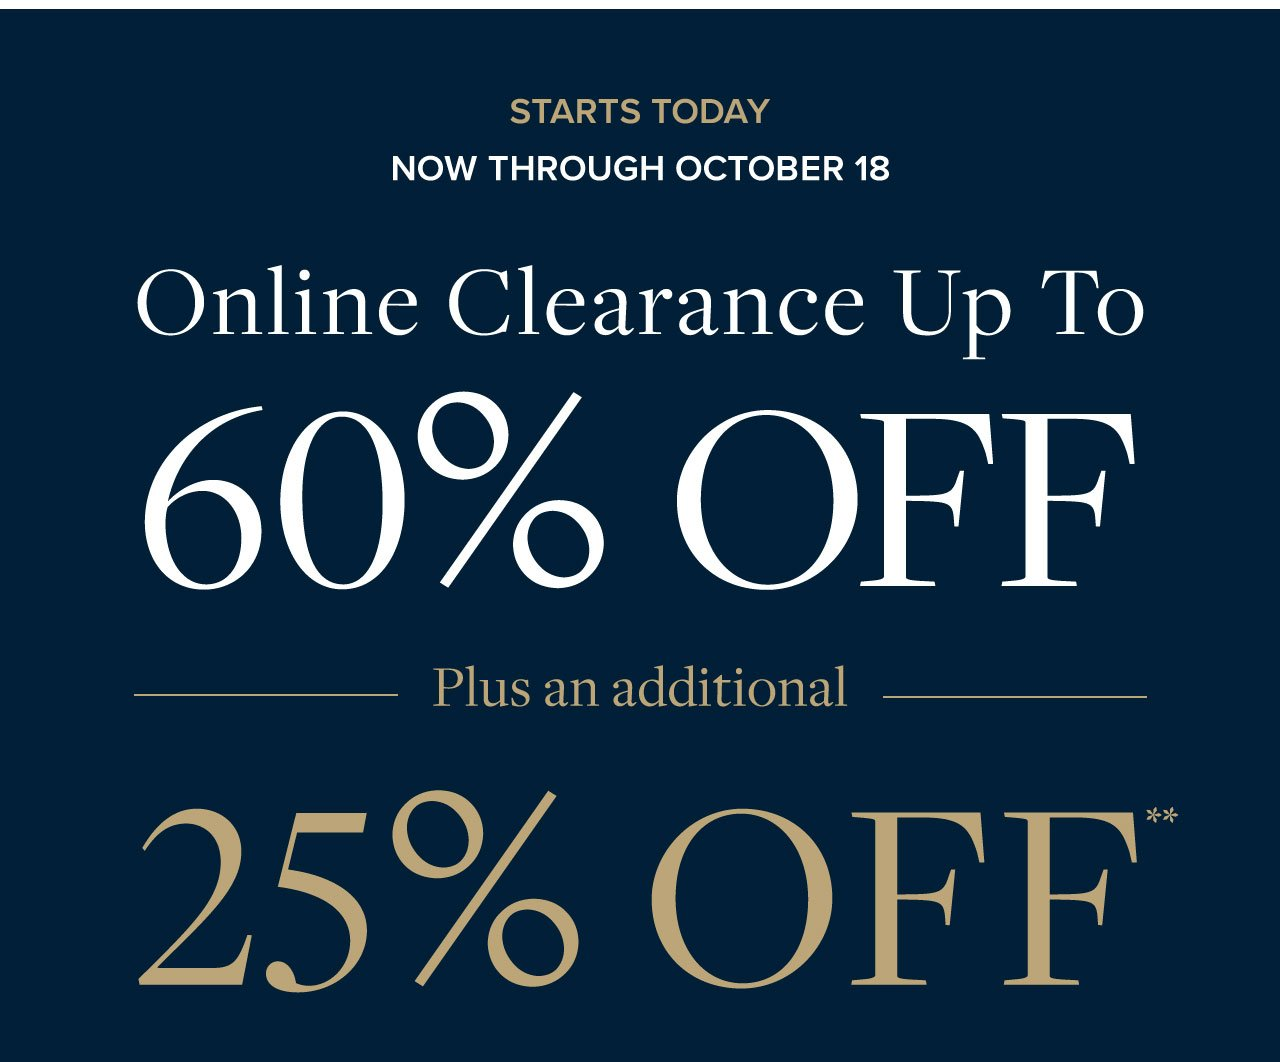 Starts Today Now Through October 18 Online Clearance Up to 60% Off Plus an additional 25% Off.